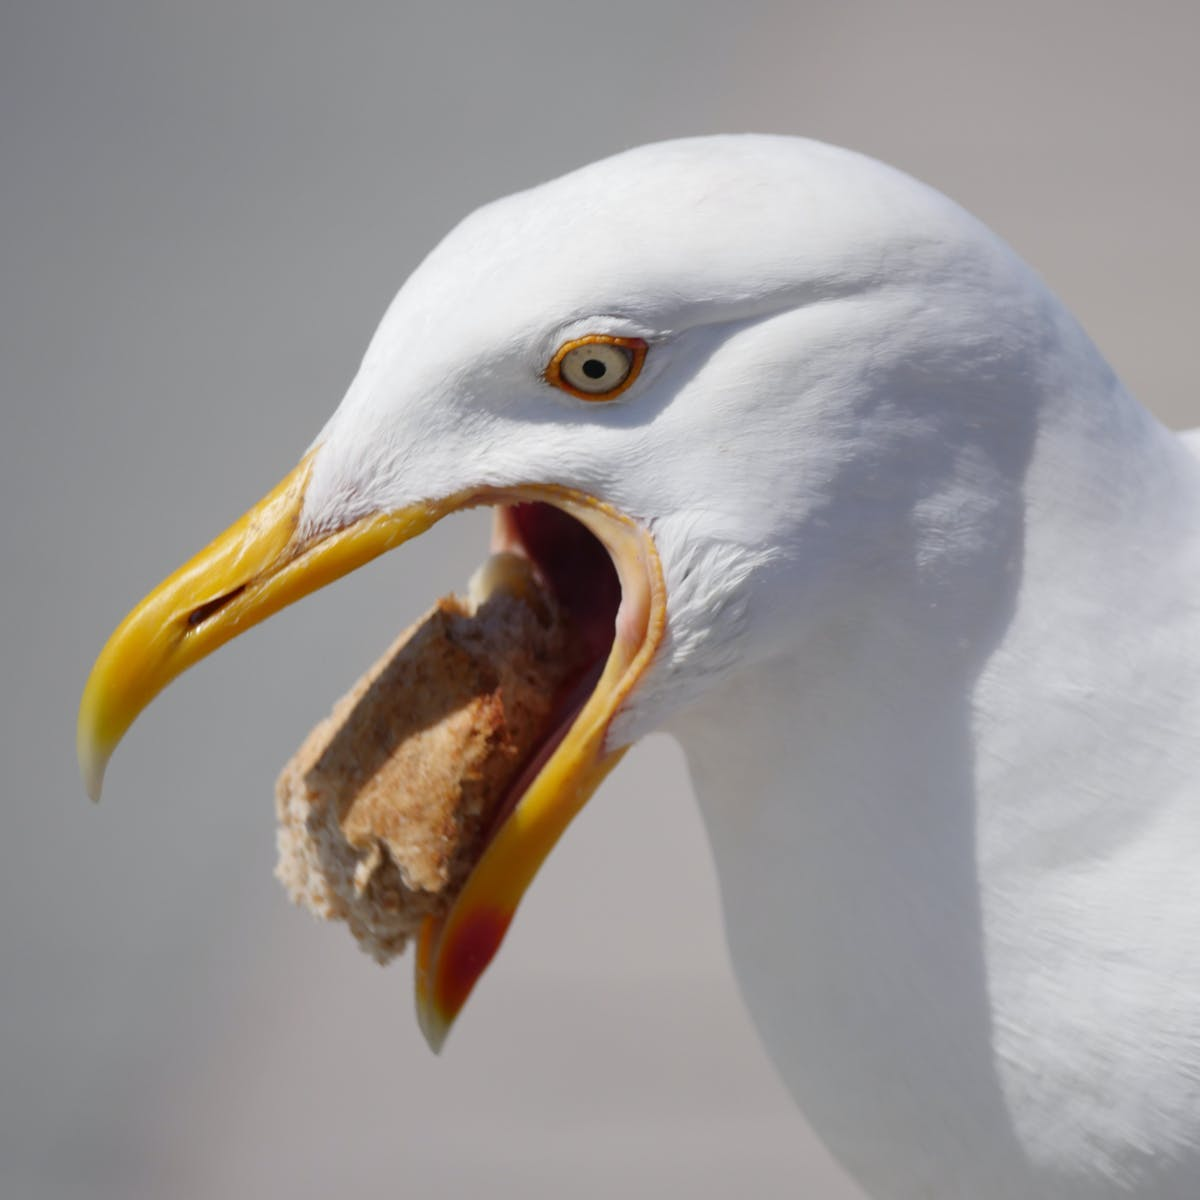 There's a Science-Backed Method for Keeping Seagulls Away From Your Food